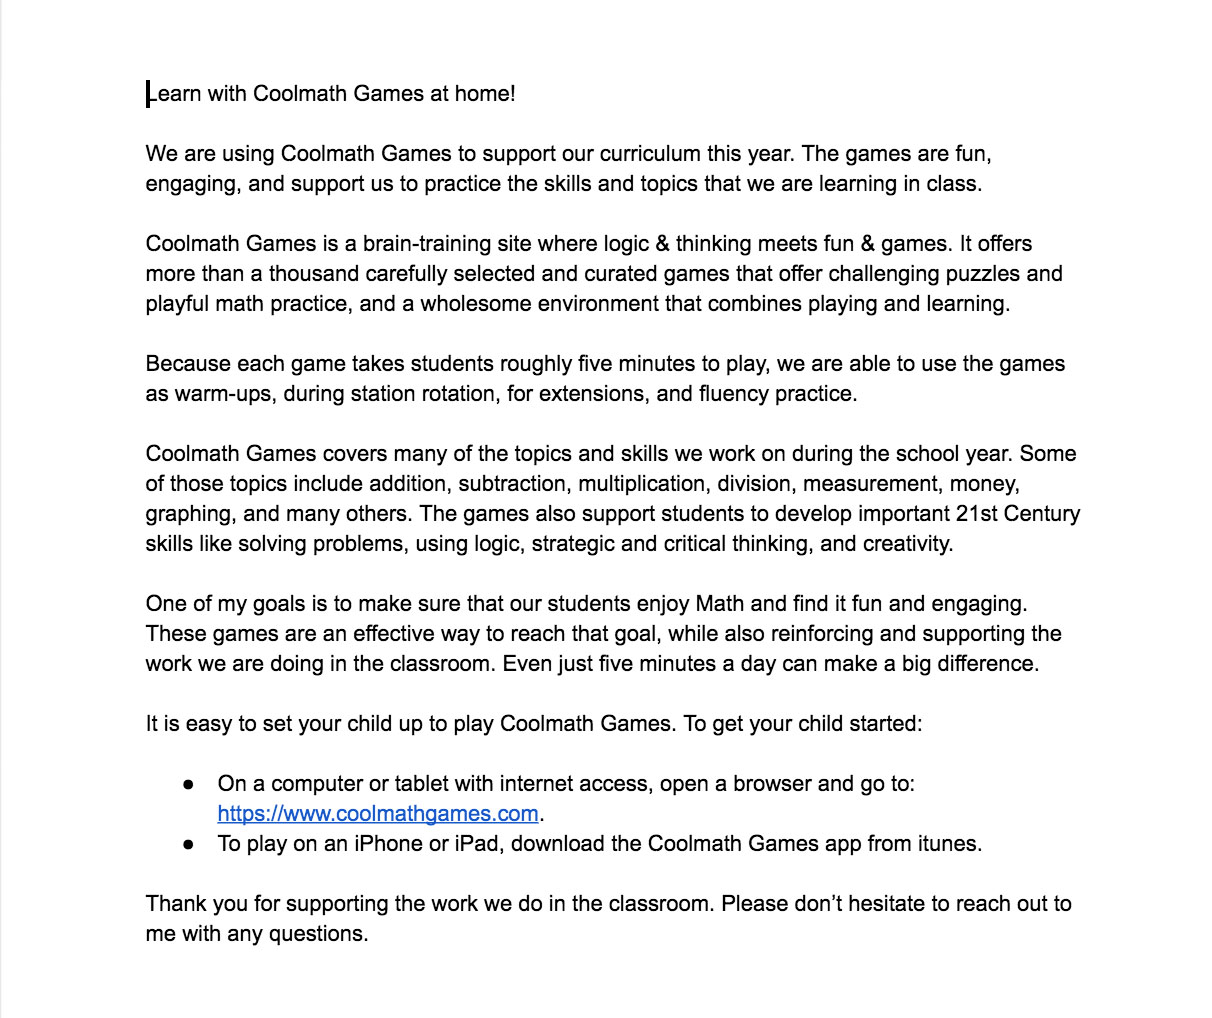 hight resolution of Coolmath Games Letter To Parents - TeacherVision